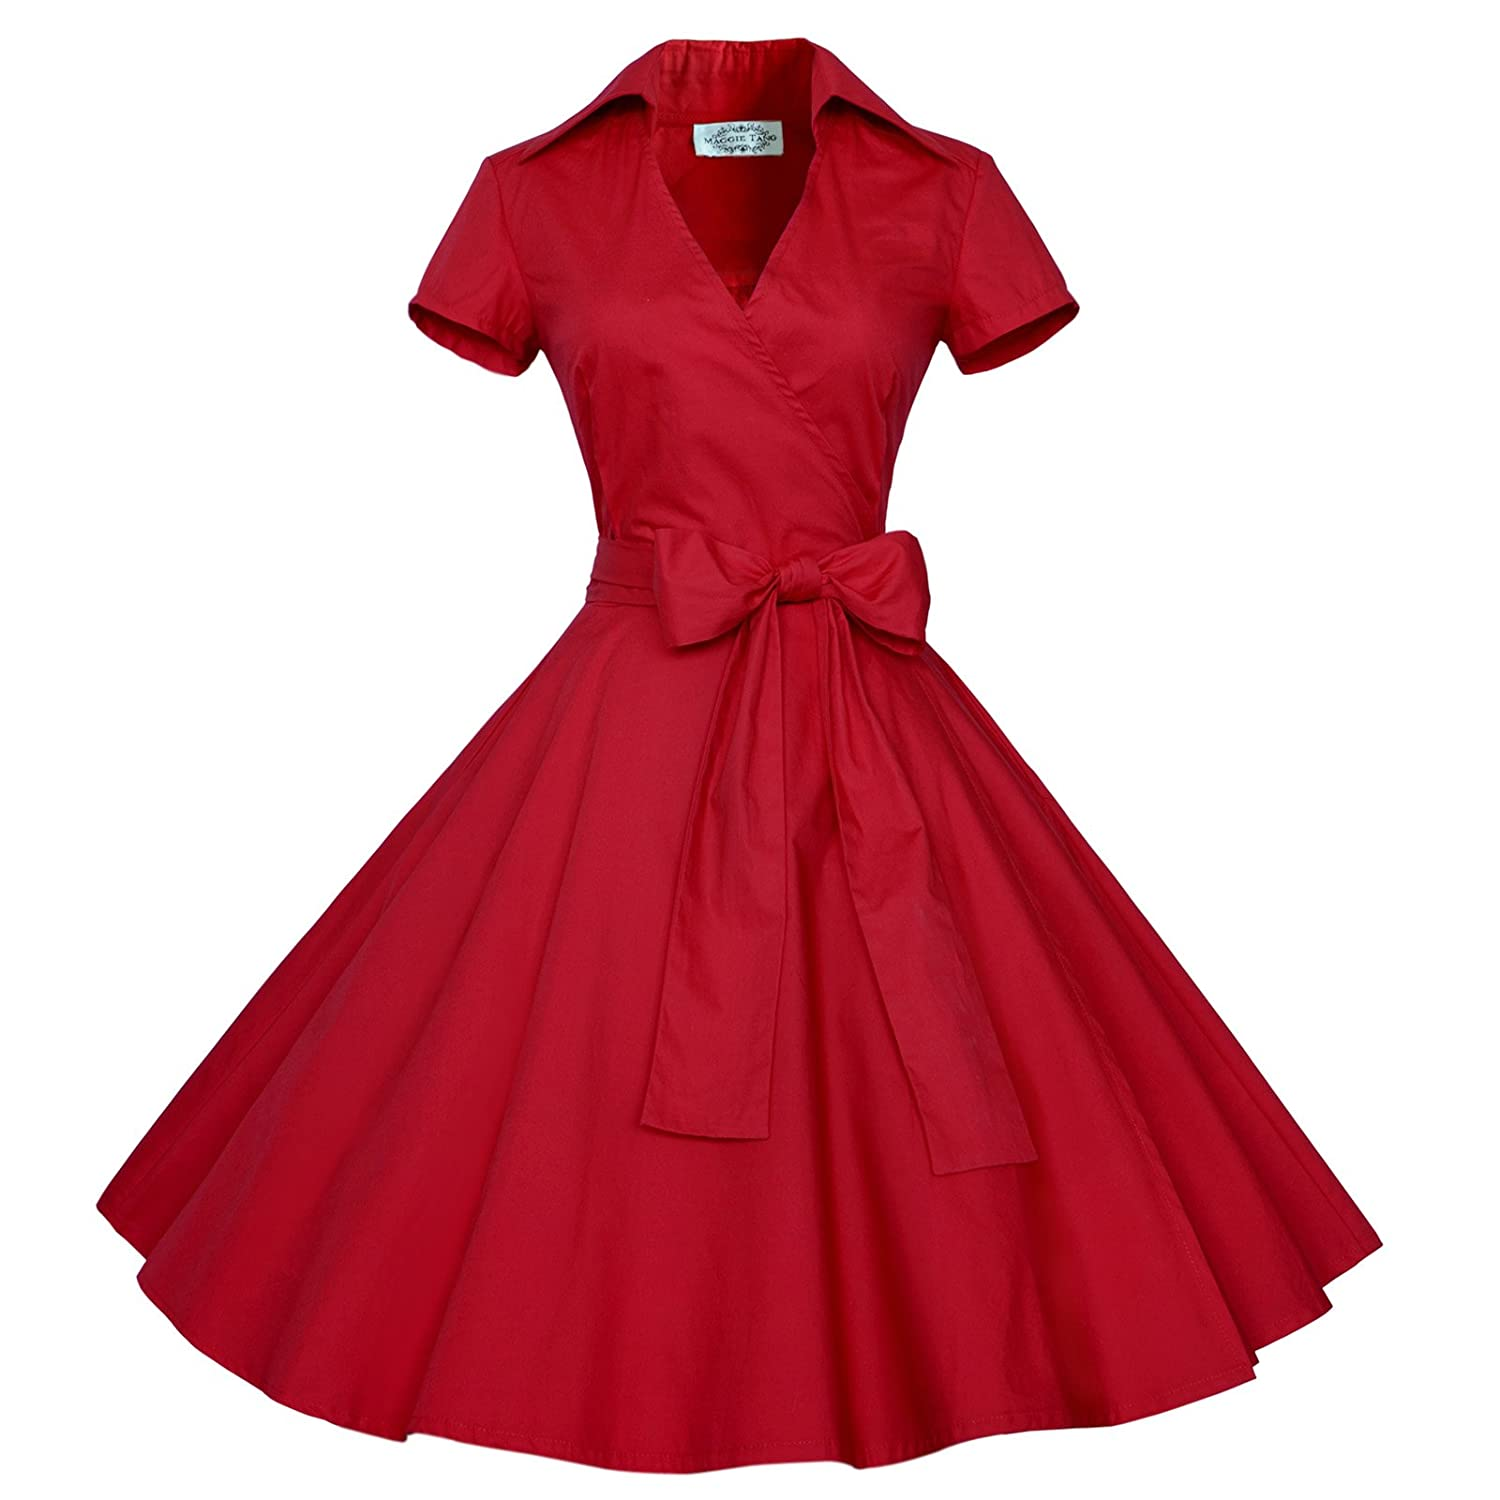 Maggie Tang 50s 60s Vintage Short Sleeves Swing Rockabilly Ball Party Dress